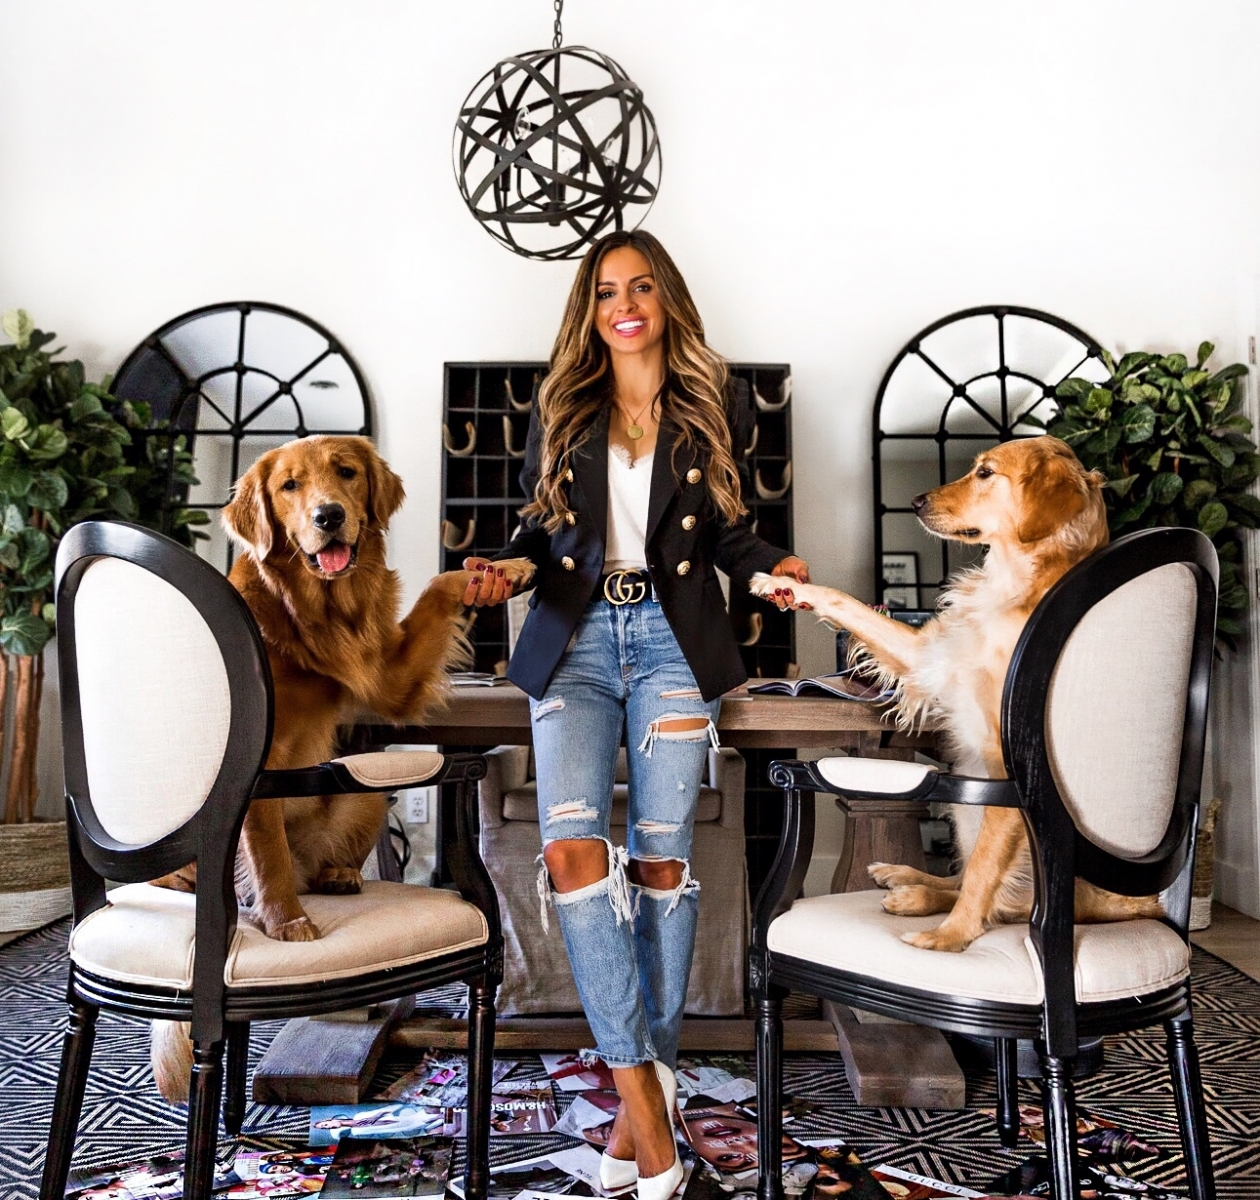 Maria Vizuete and her two dogs in her home office. Courtesy Maria Vizuete.